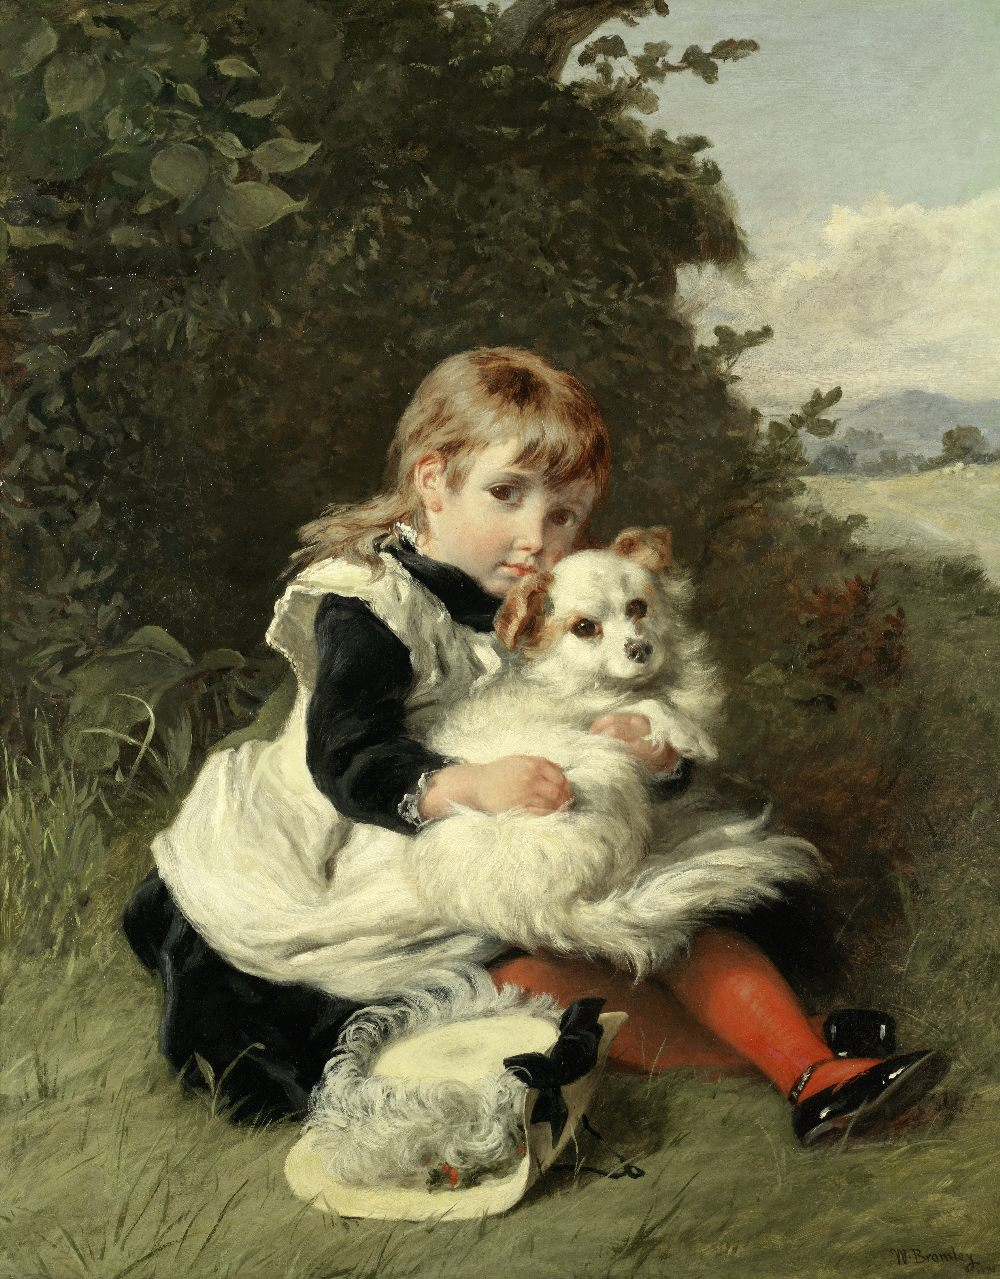 Lot 36 - William Bromley (British, active 1835-1888) The best of friends